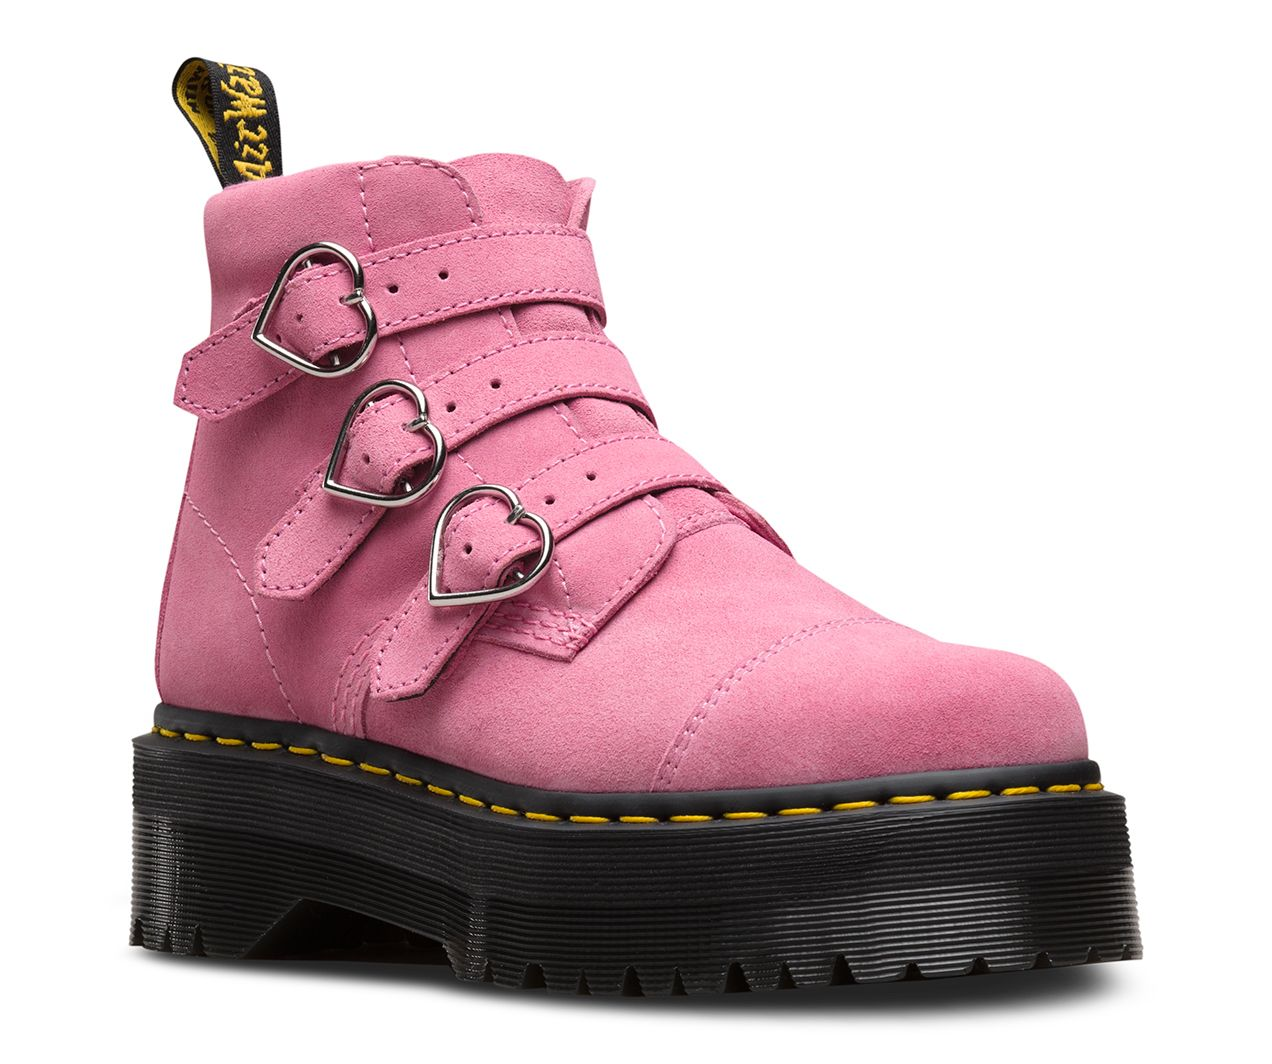 Dr martens lazy oaf buckle boot in 2020 | Women shoes